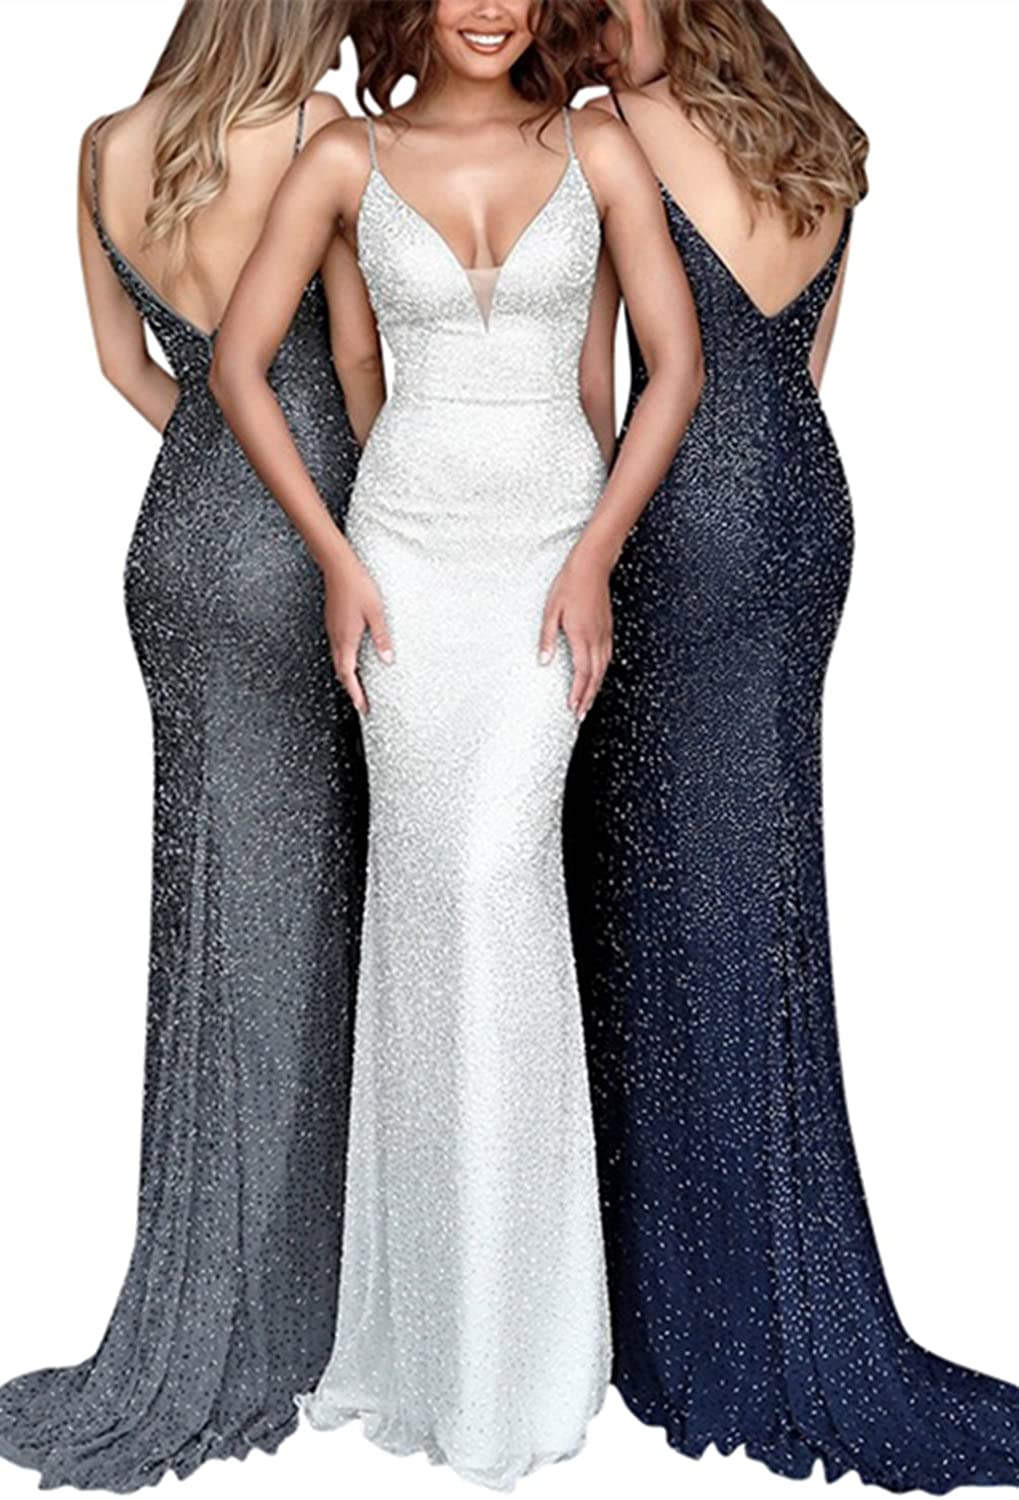 Homdor Women Double V Neck Mermaid Sequins Bridesmaid Dresses Long Evening Gown